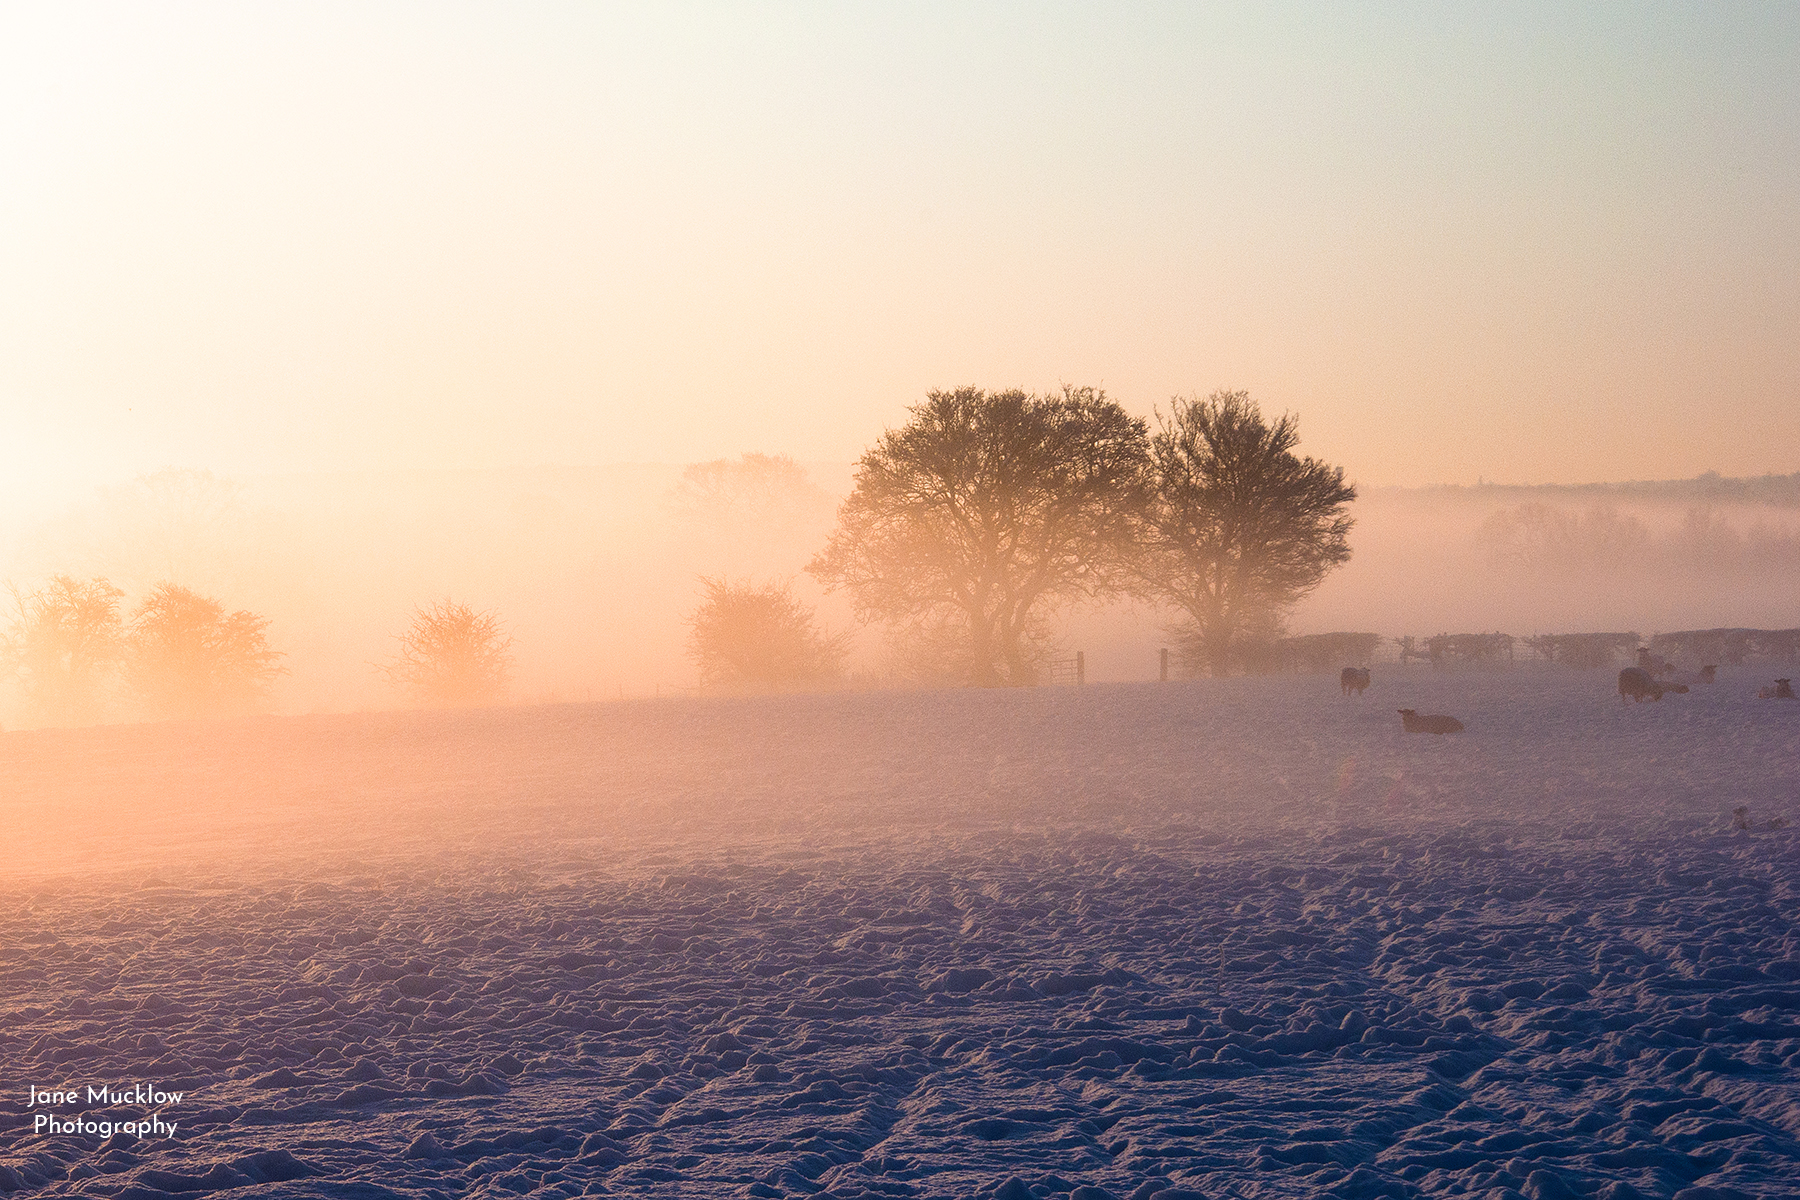 Photograph by Jane Mucklow of a snowy sunrise over a sheep field and trees